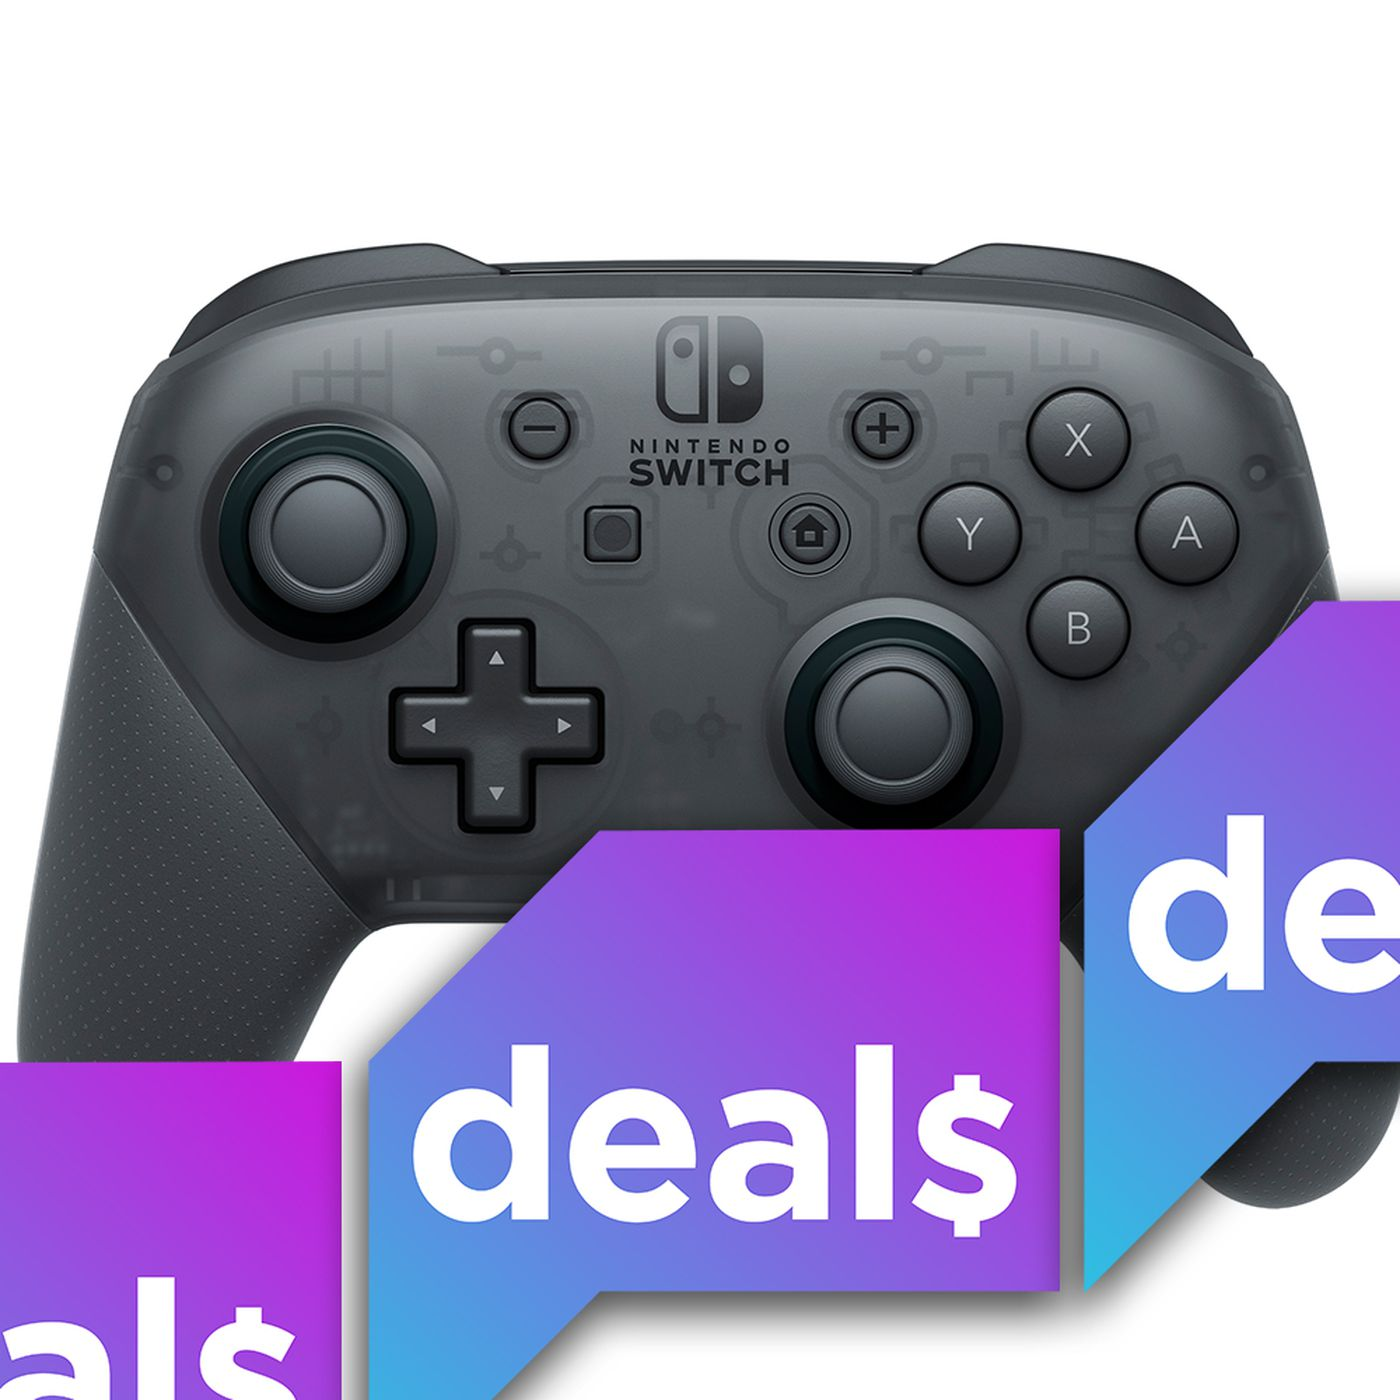 Best Gaming Deals Nintendo Switch Pro Controllers Microsd Cards Pcs Polygon